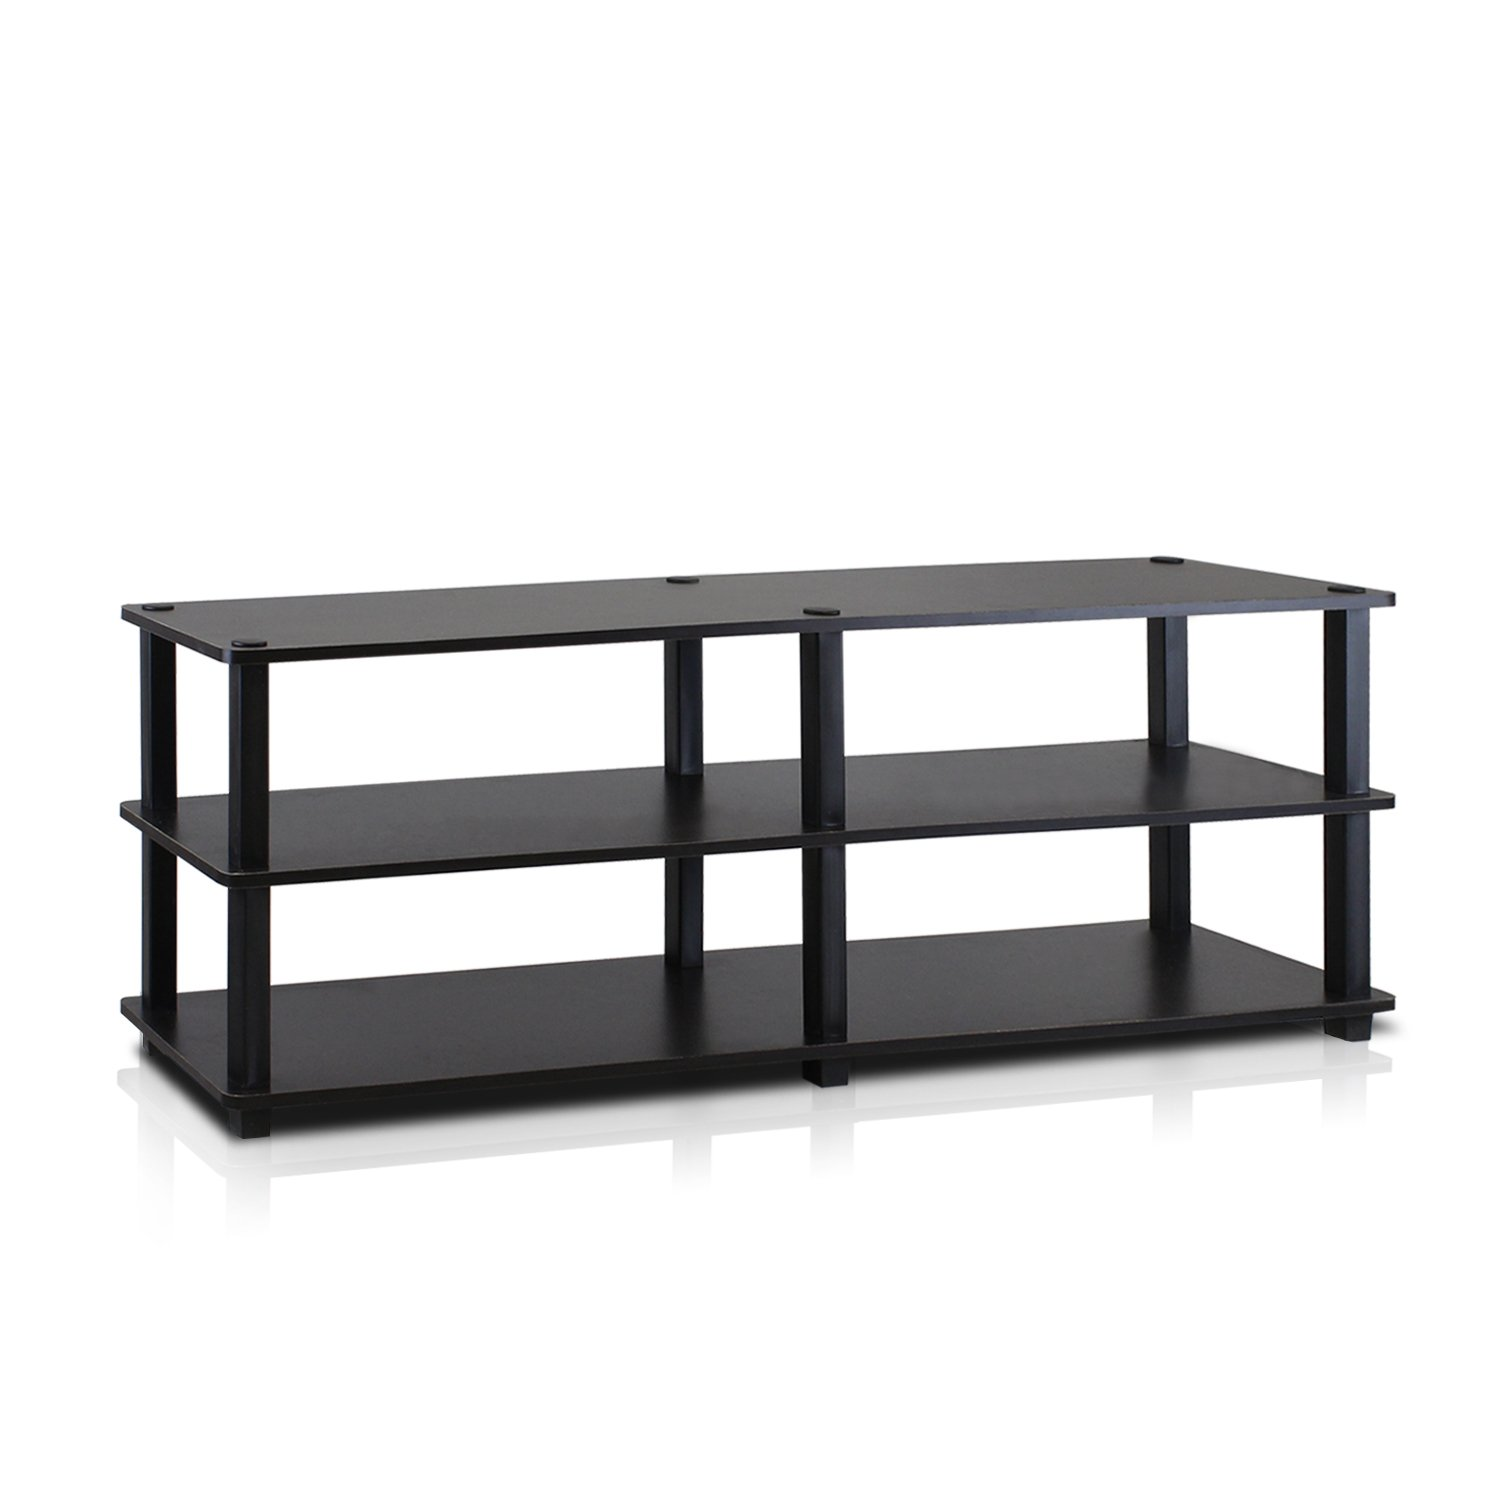 Furinno TV14038EX/BK Turn-S-Tube No Tools 3-Tier Entertainment TV Stands, Espresso/Black by Furinno